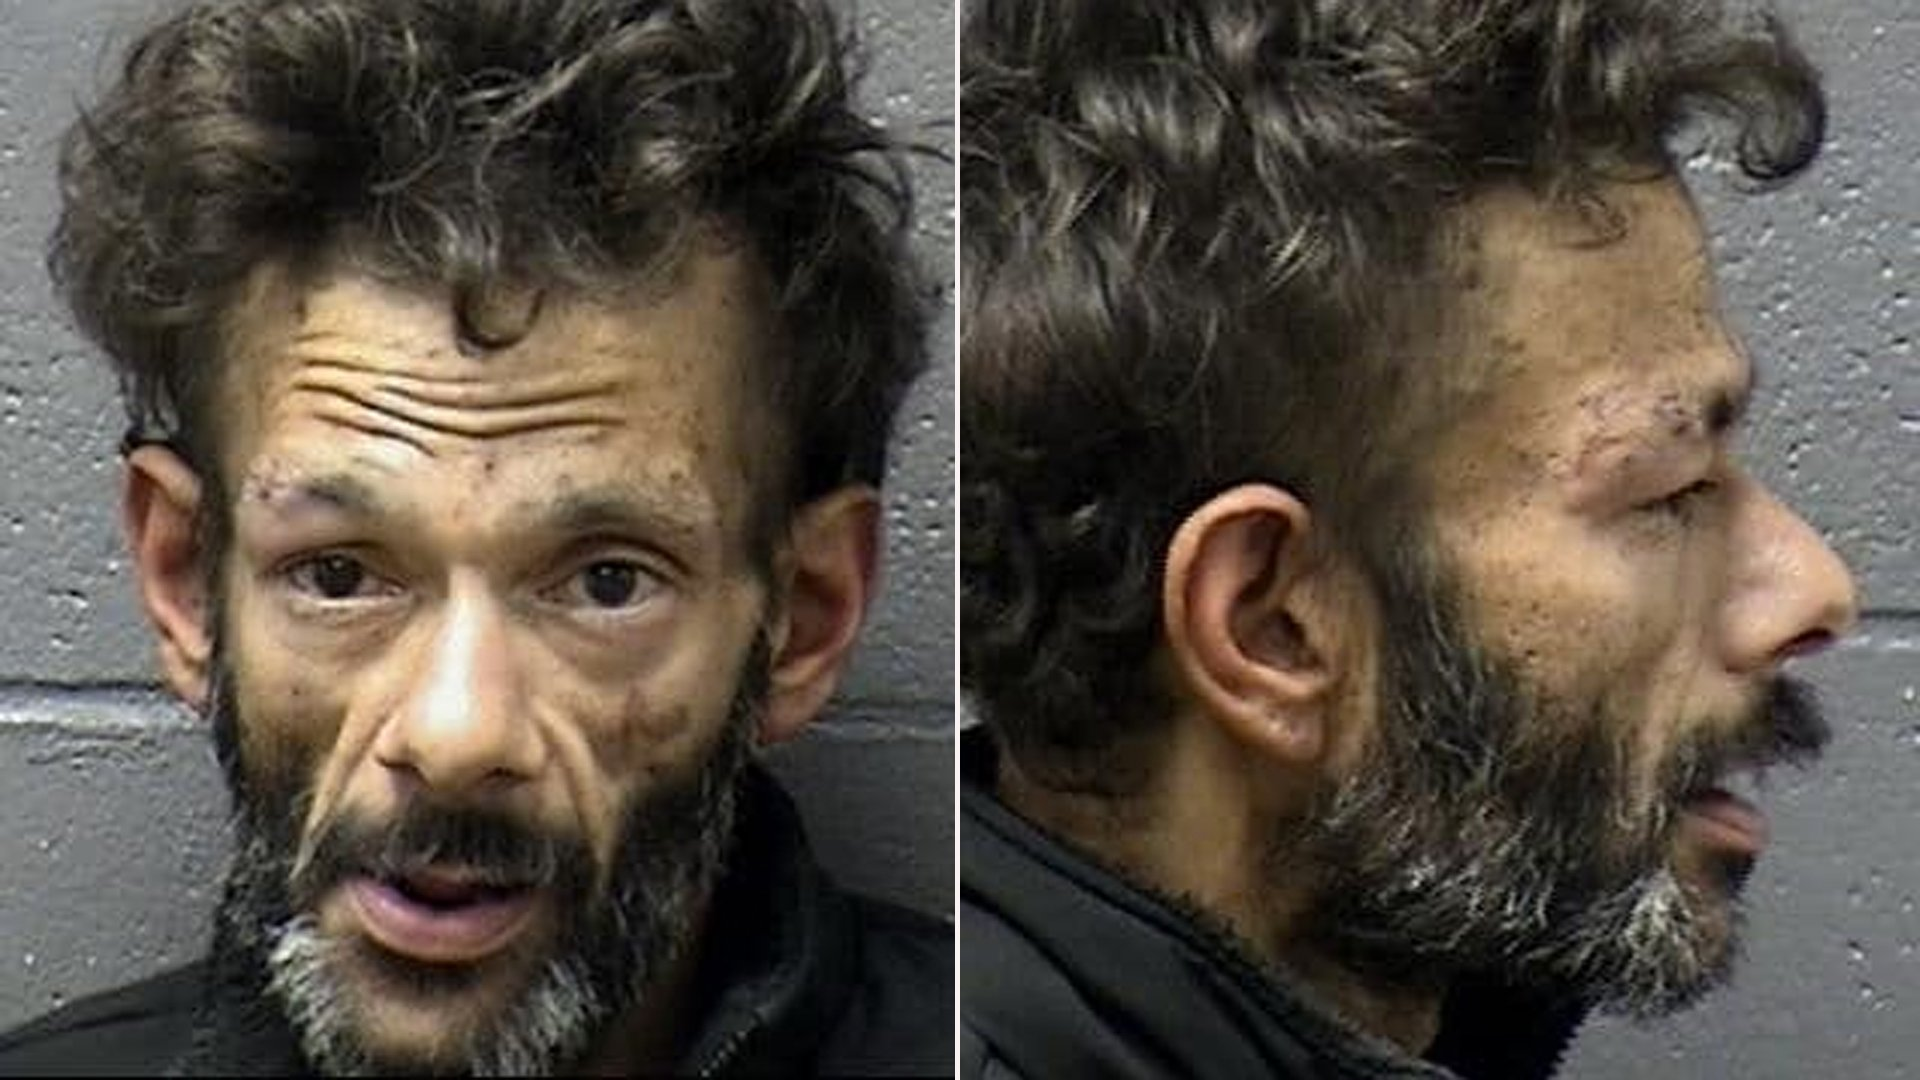 Shaun Weiss is seen in an image provided by the Marysville Police Department.